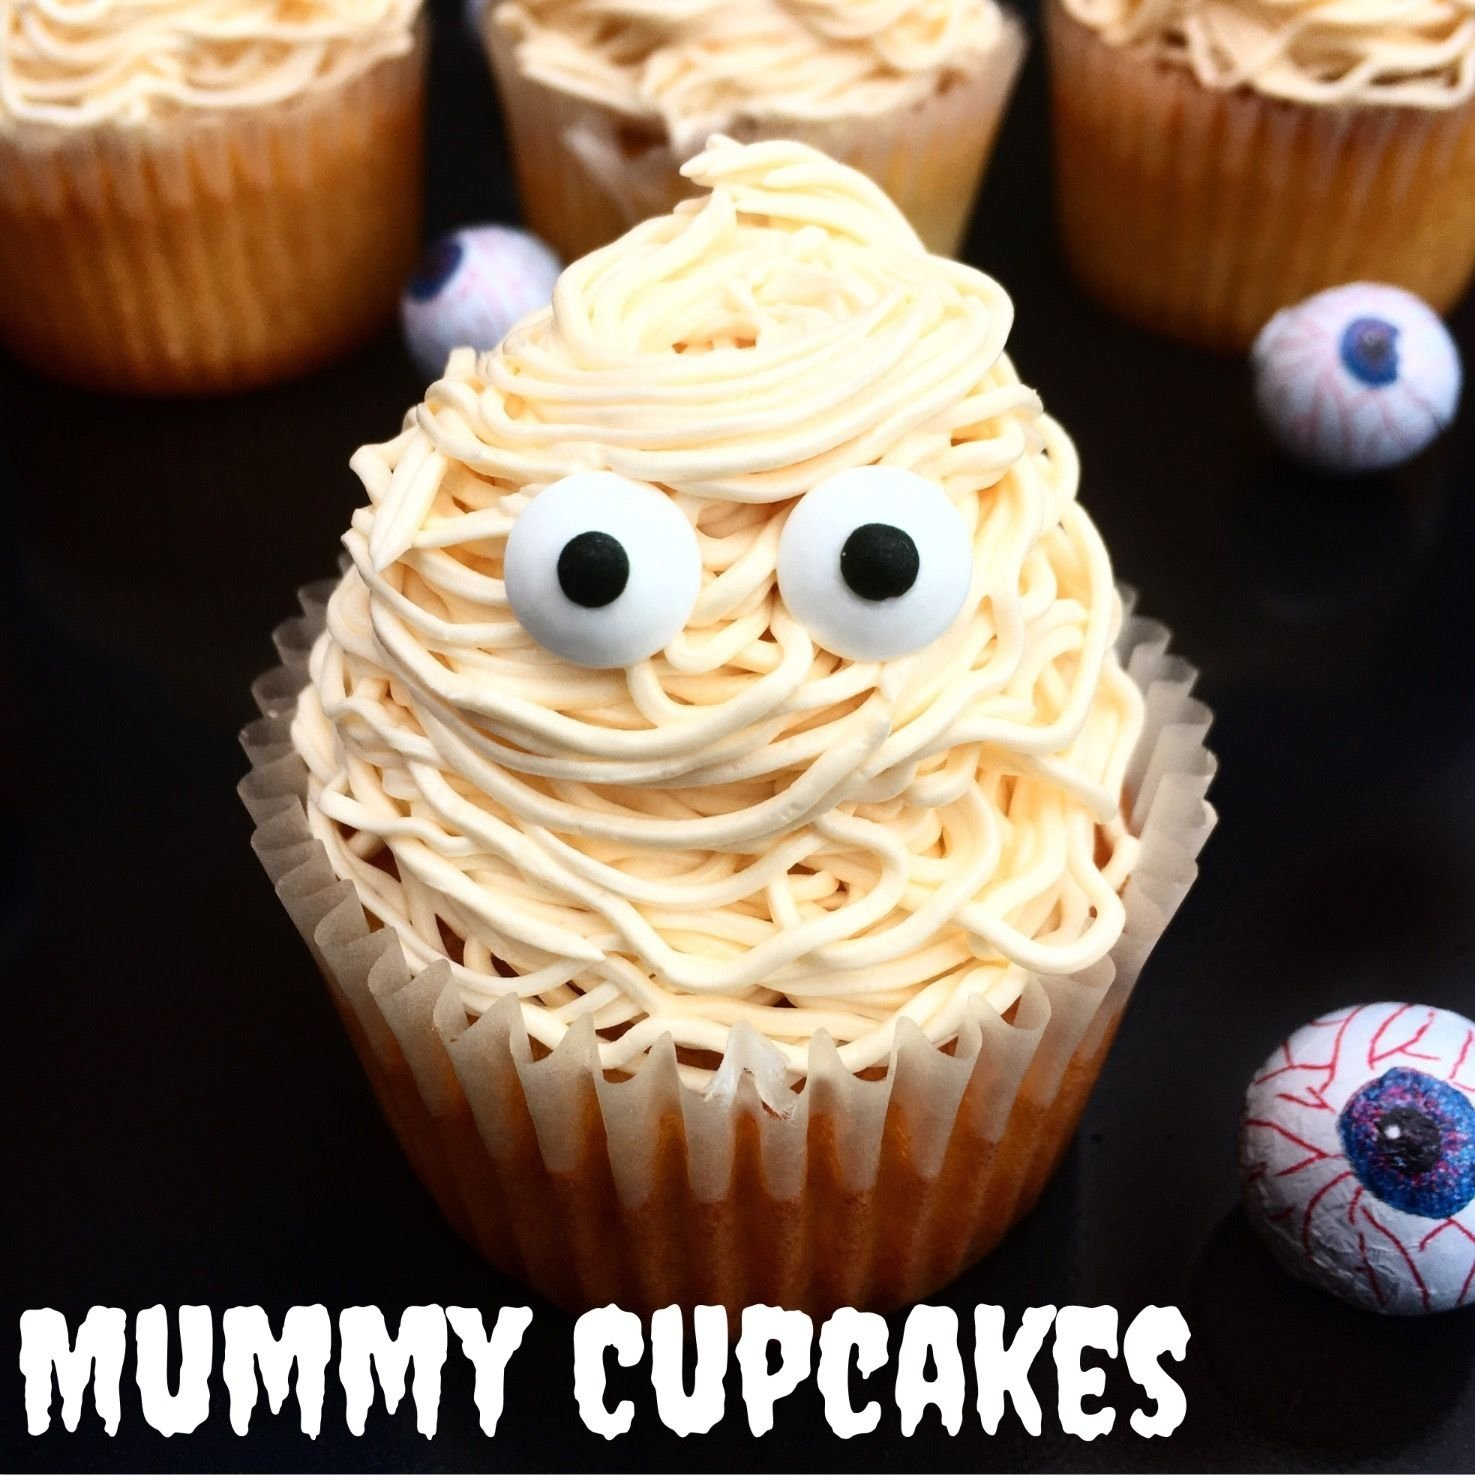 10 Fabulous Fun Baking Ideas For Kids mummy cupcakes fun and easy halloween baking ideas to do with kids 2020